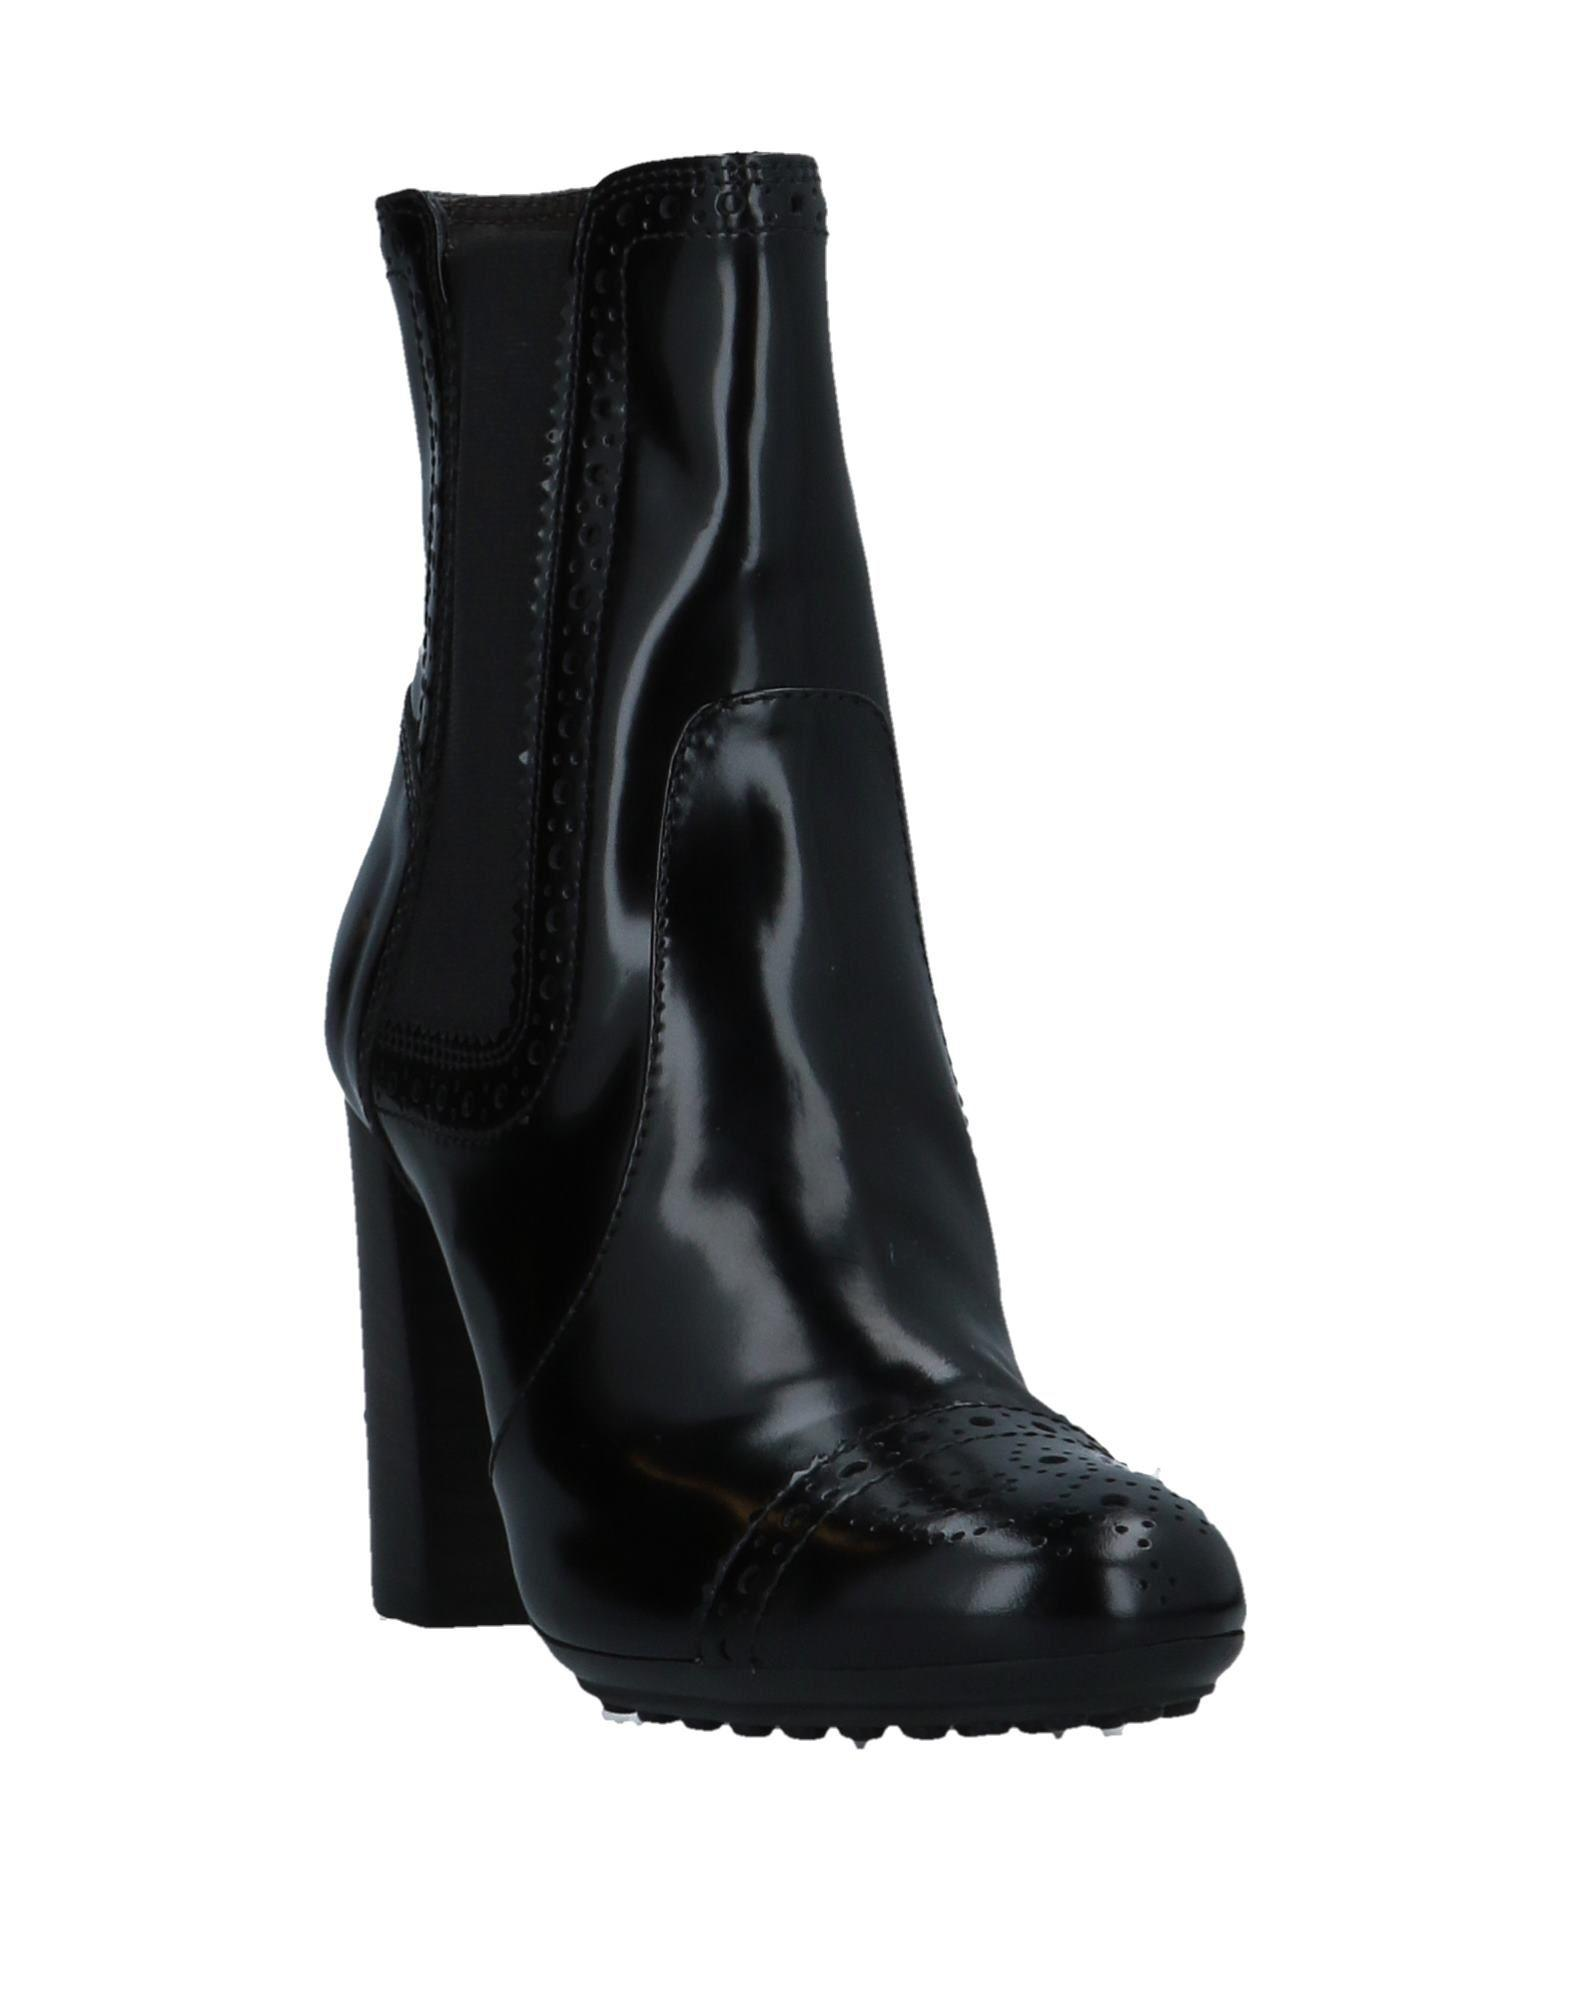 Tod's Rubber Ankle Boots in Black